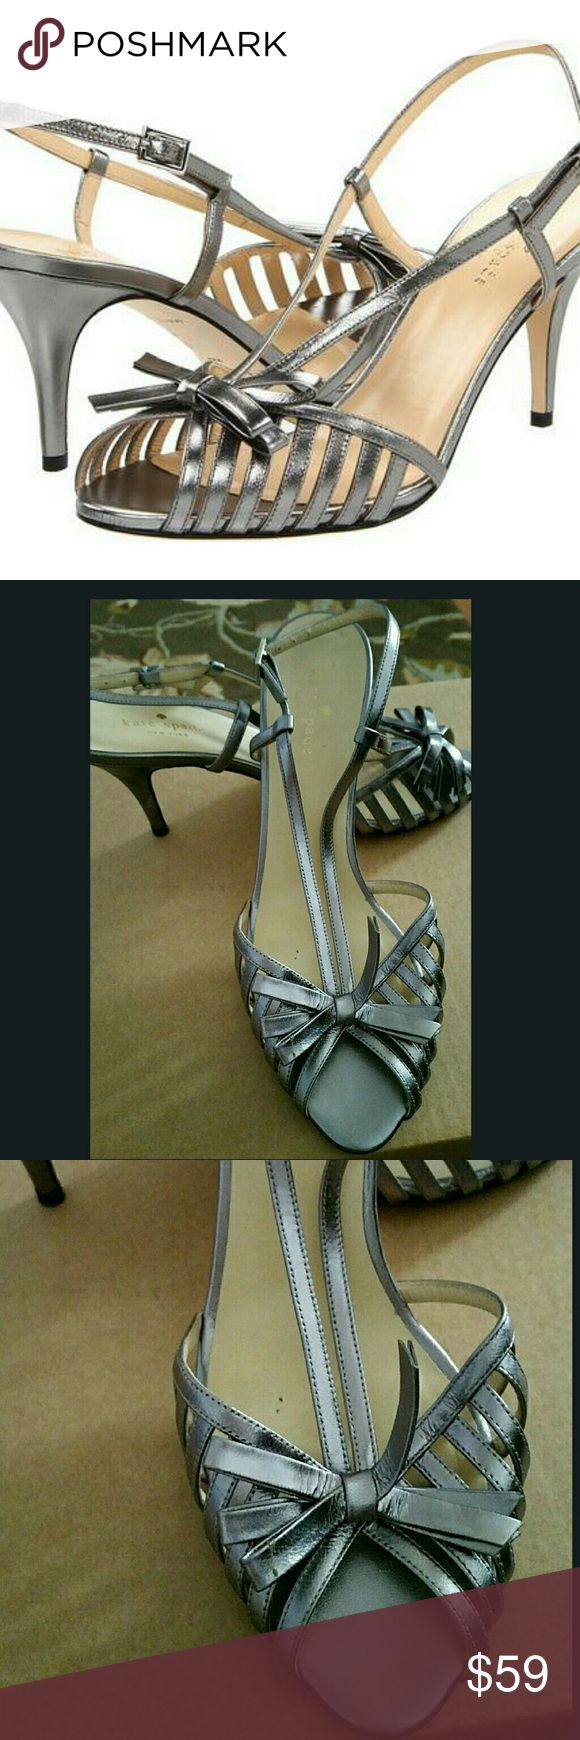 """Beautiful KATE SPADE Silver Metallic STRAPPY heels Preowned IN EXCELLENT CONDITION   KATE SPADE """"Sid"""" leather   Metallic gray/ pewter / silver  STRAPPY heels  Bow detail  SZ 10 B  3"""" heels  NO box kate spade Shoes Heels"""